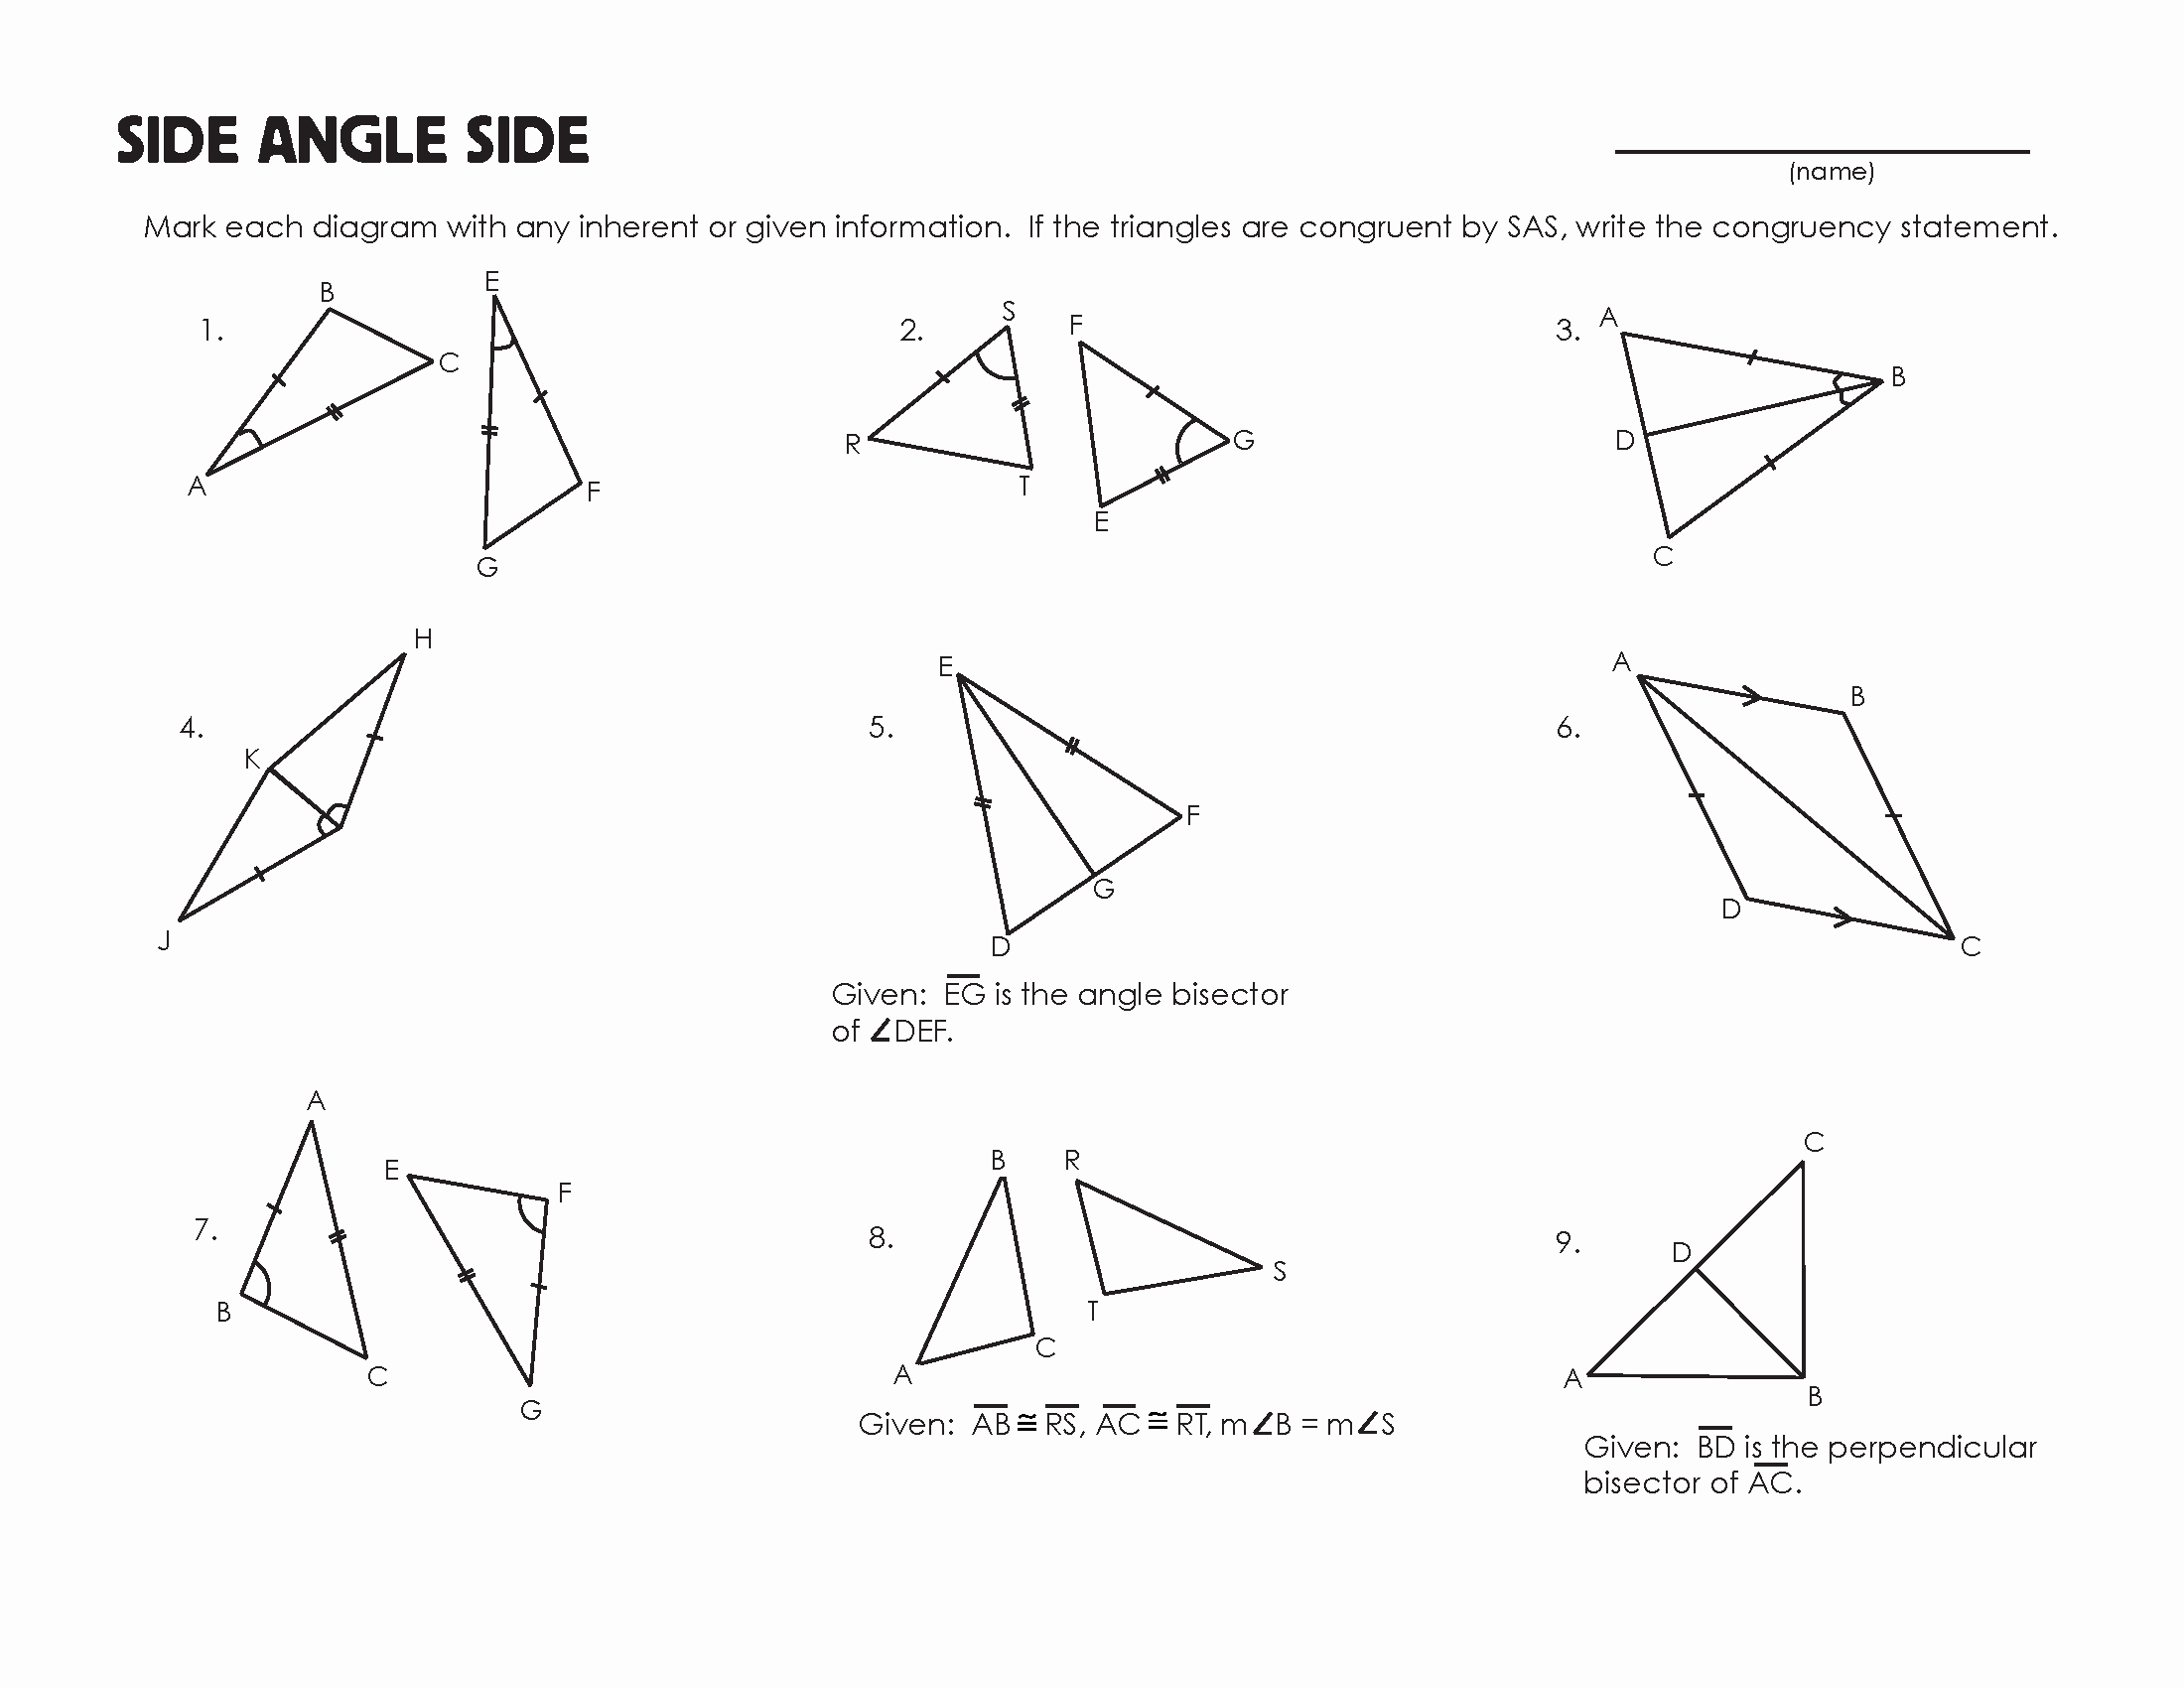 Congruent Triangles Worksheet with Answers Fresh Congruent Triangles Worksheet Flora